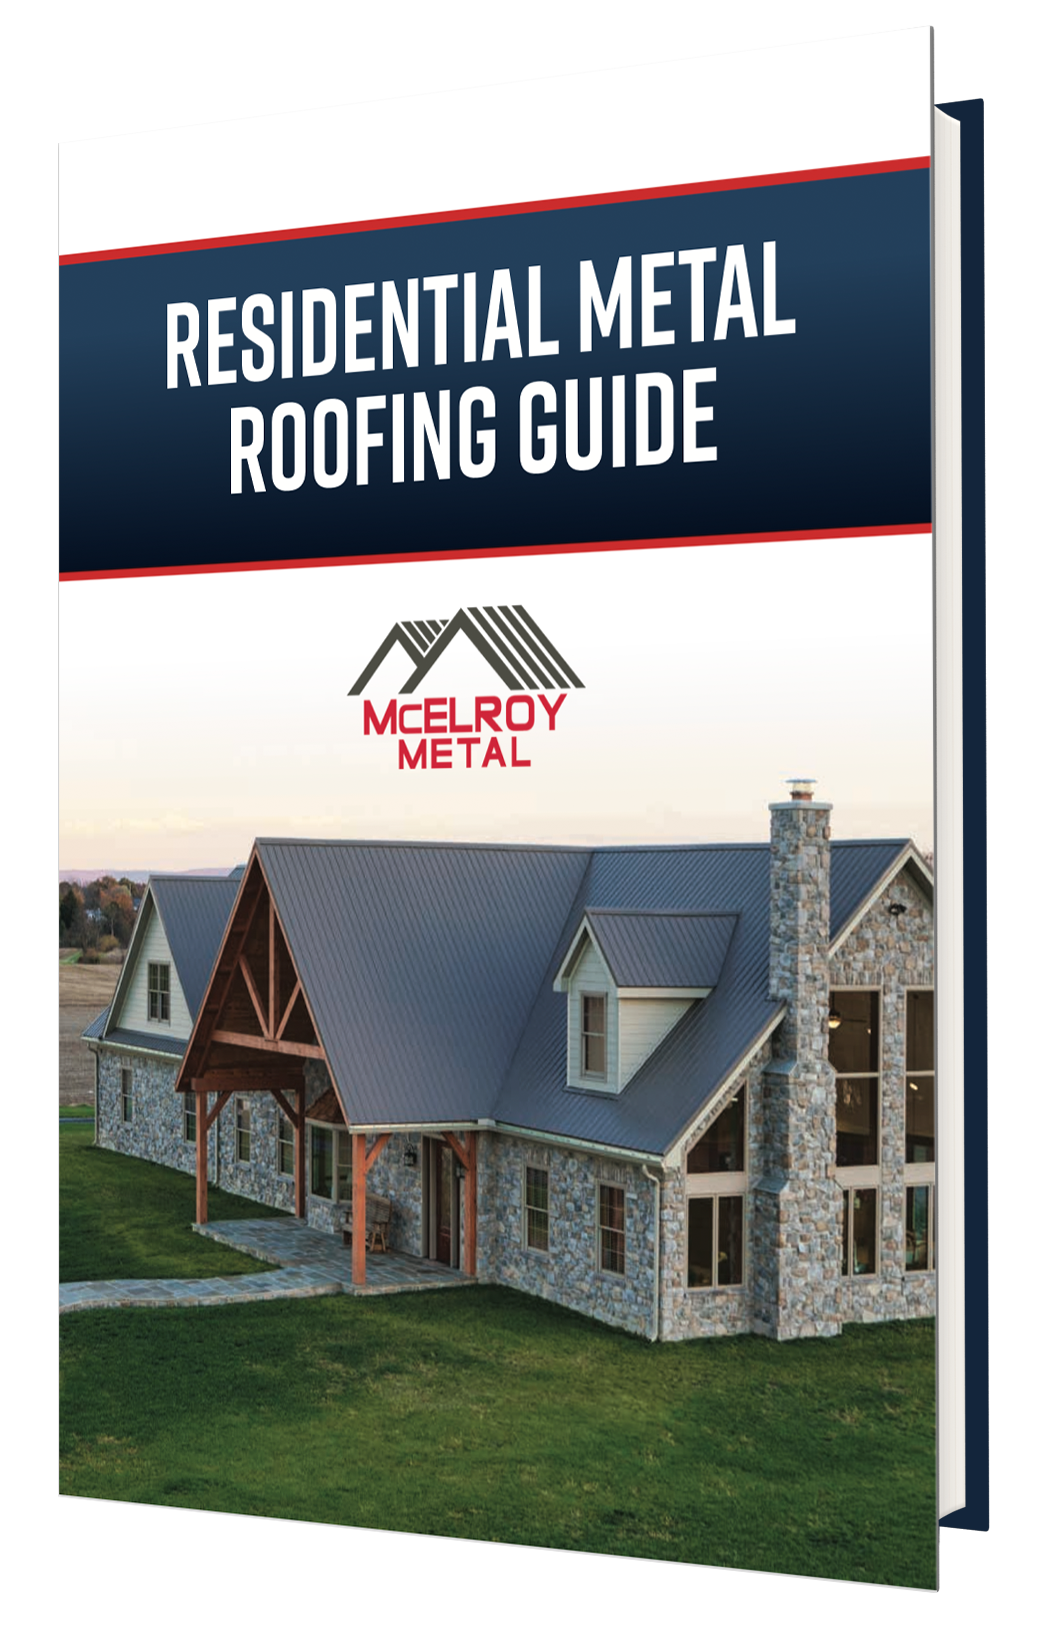 MCE_012_OFF-Benefits-of-Metal-Roofing-for-Your-Home-Ebook-3D-Cover